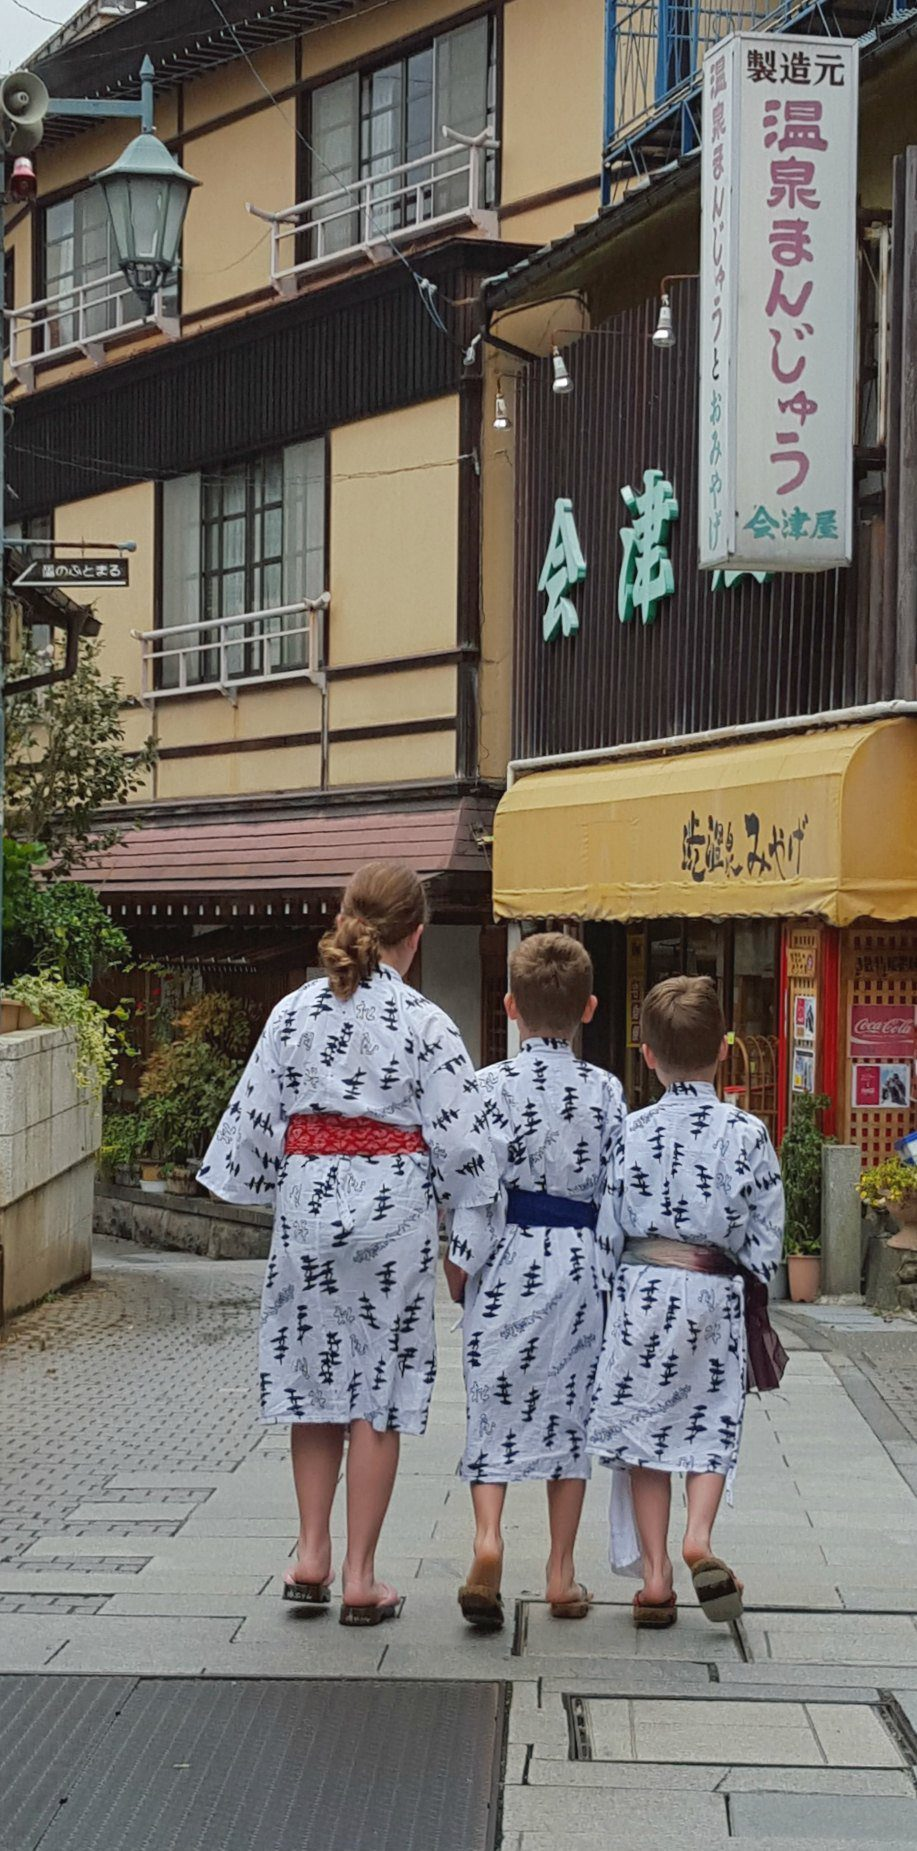 My children exploring Shibu Onsen in Japan, on our way to the onsen baths